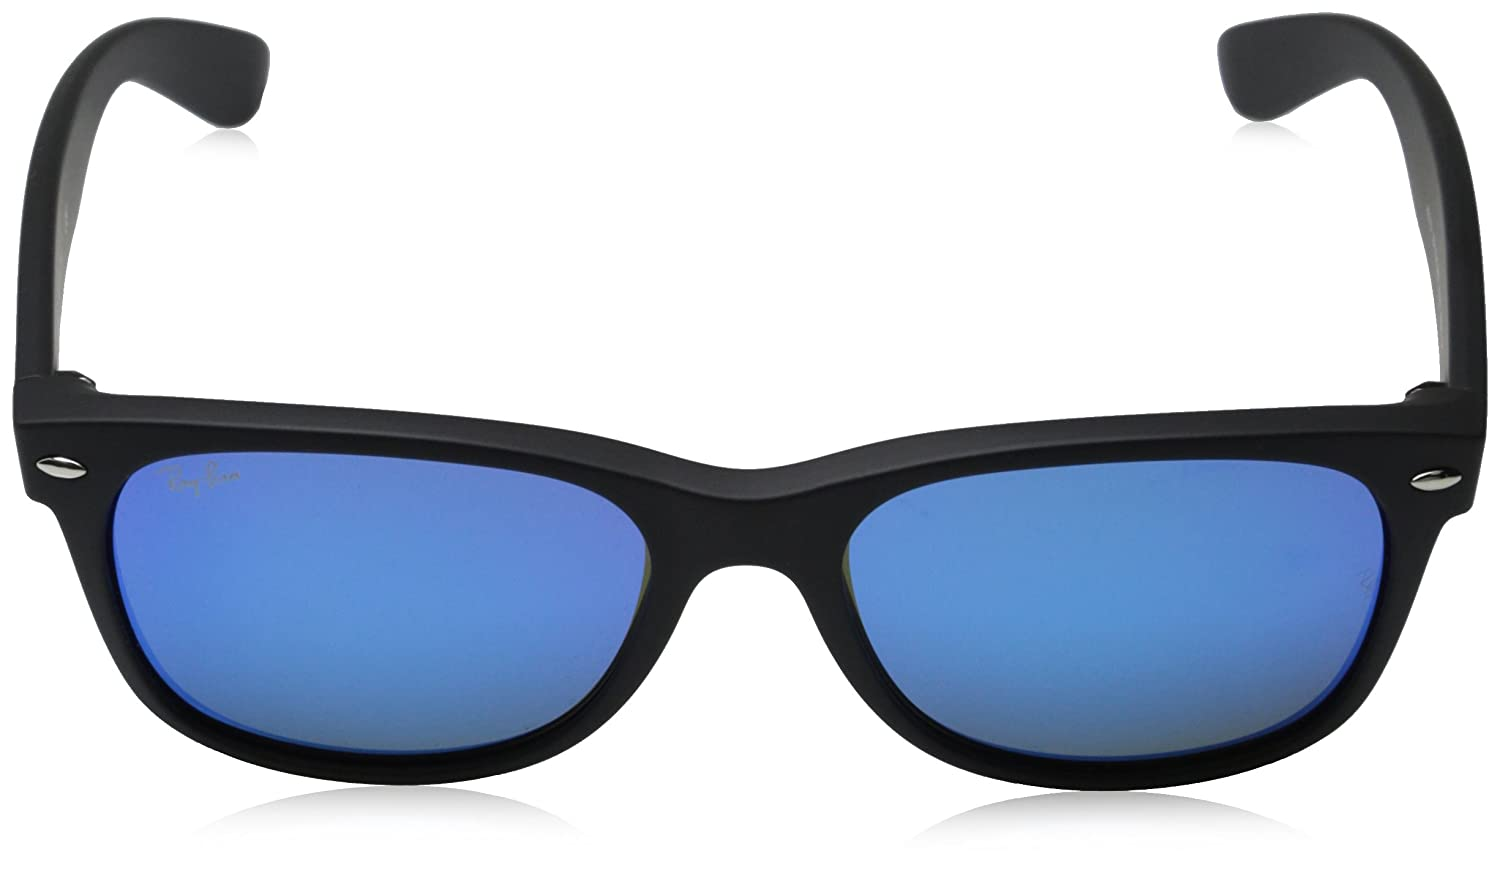 f55ffec35f5 Amazon.com  Ray-Ban Unisex New Wayfarer Flash RB2132 622 17 Non-Polarized  Sunglasses